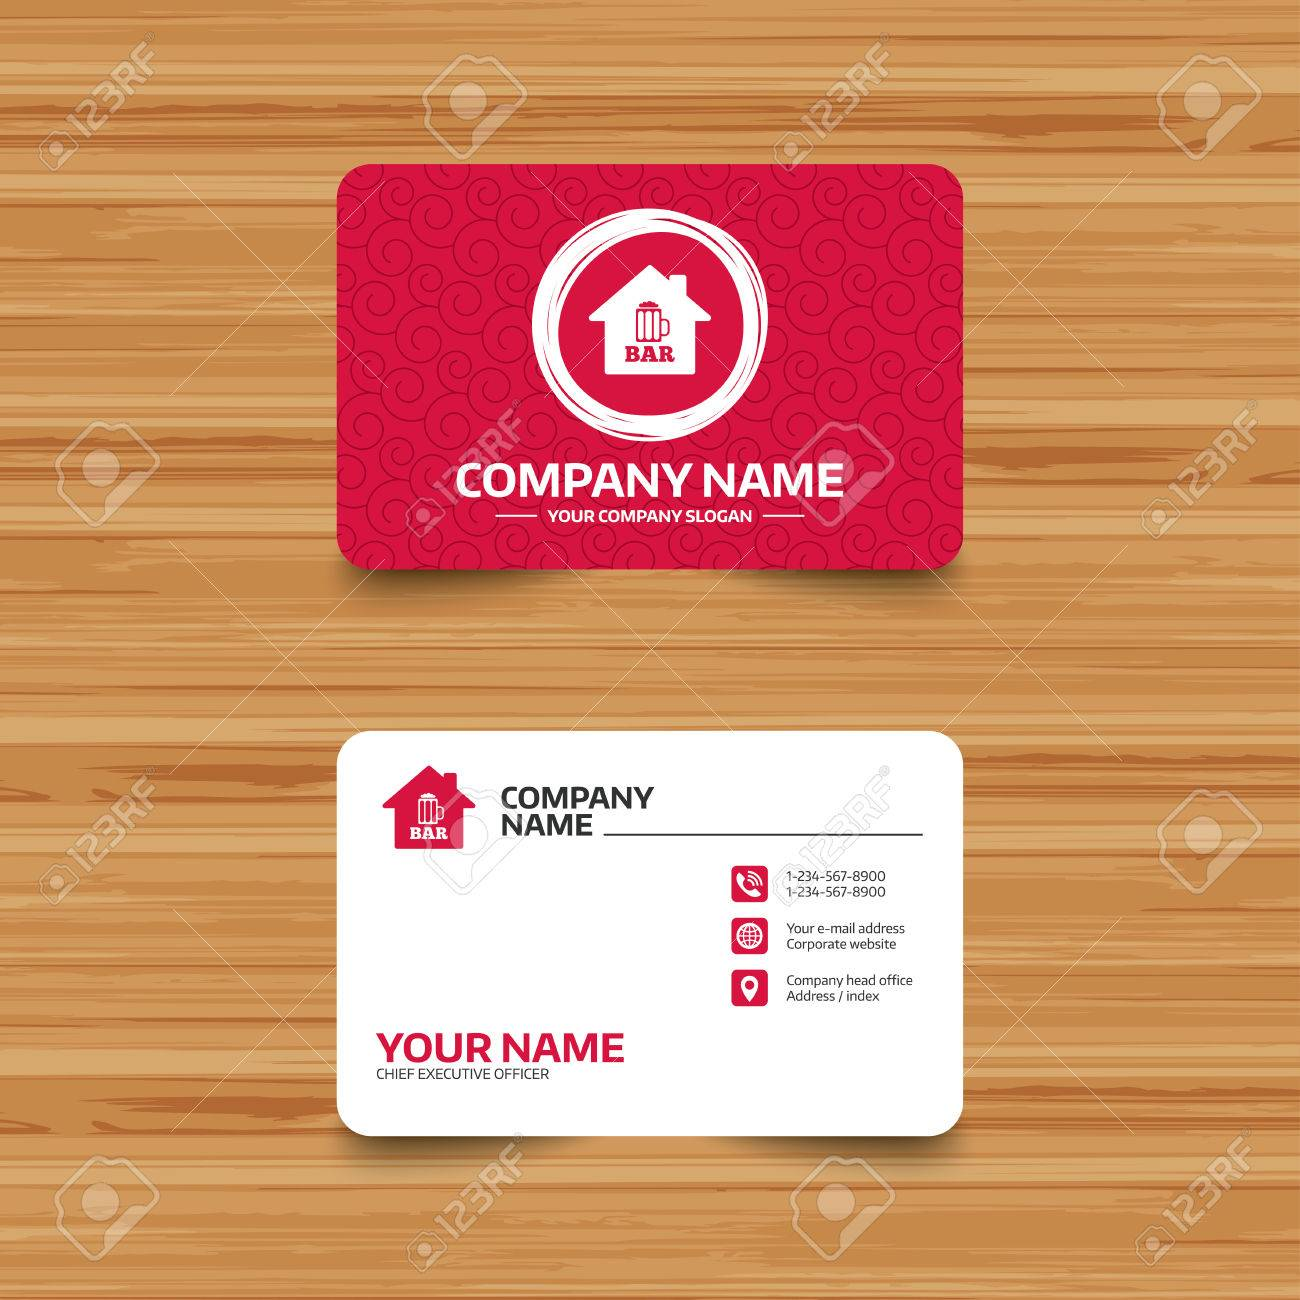 Business card template with texture bar or pub sign icon glass business card template with texture bar or pub sign icon glass of beer symbol biocorpaavc